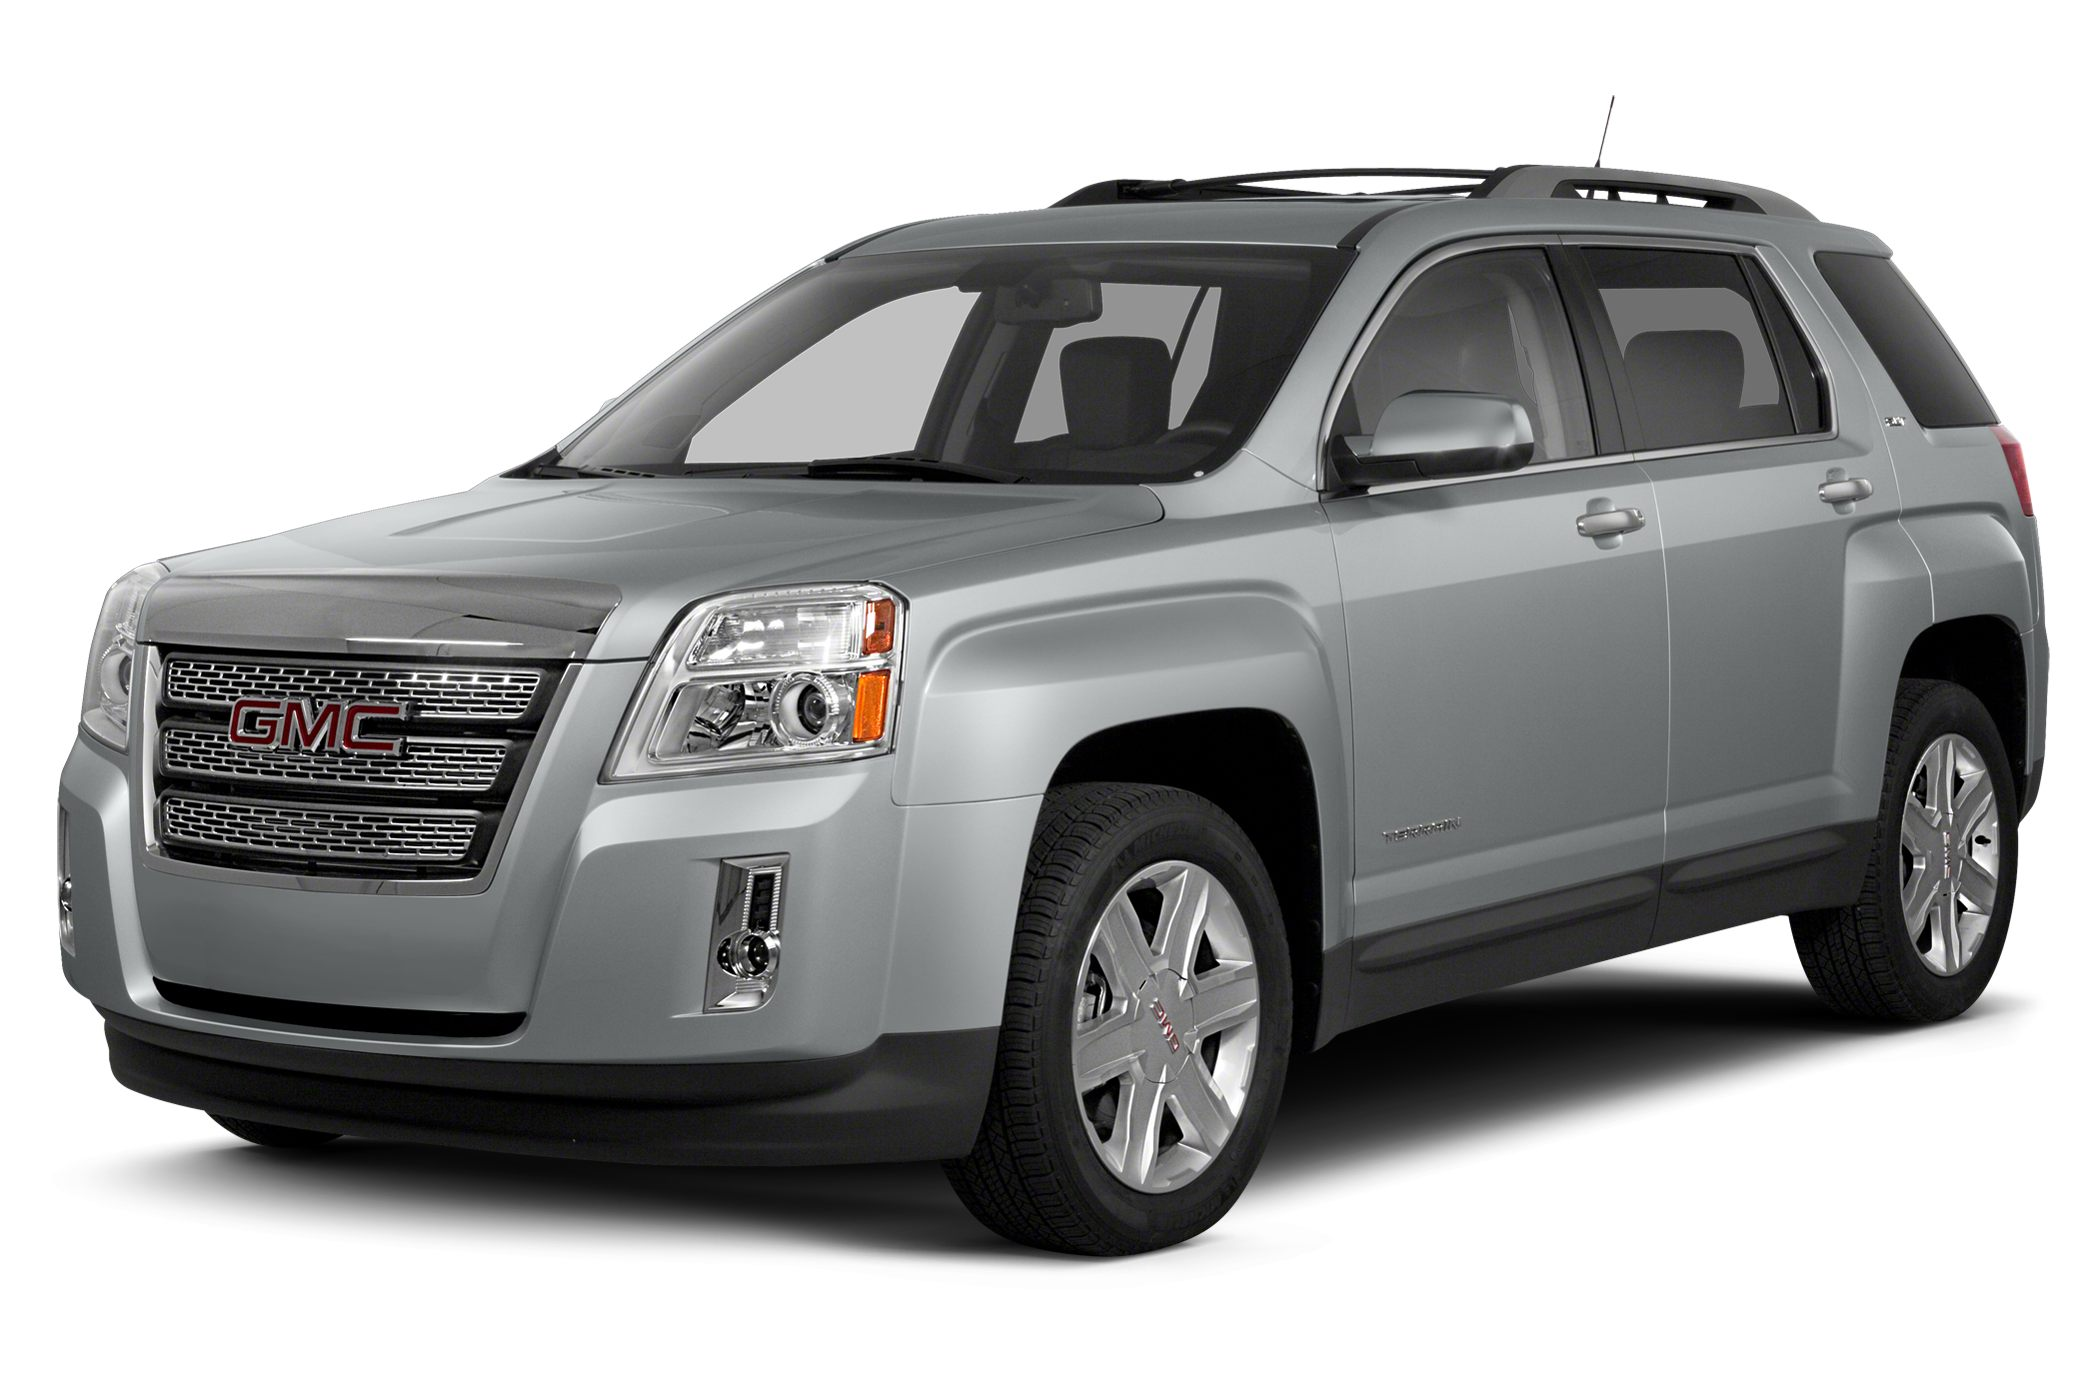 2013 GMC Terrain SLE-2 Road trips can be fun again with the anti-lock brakes traction control an